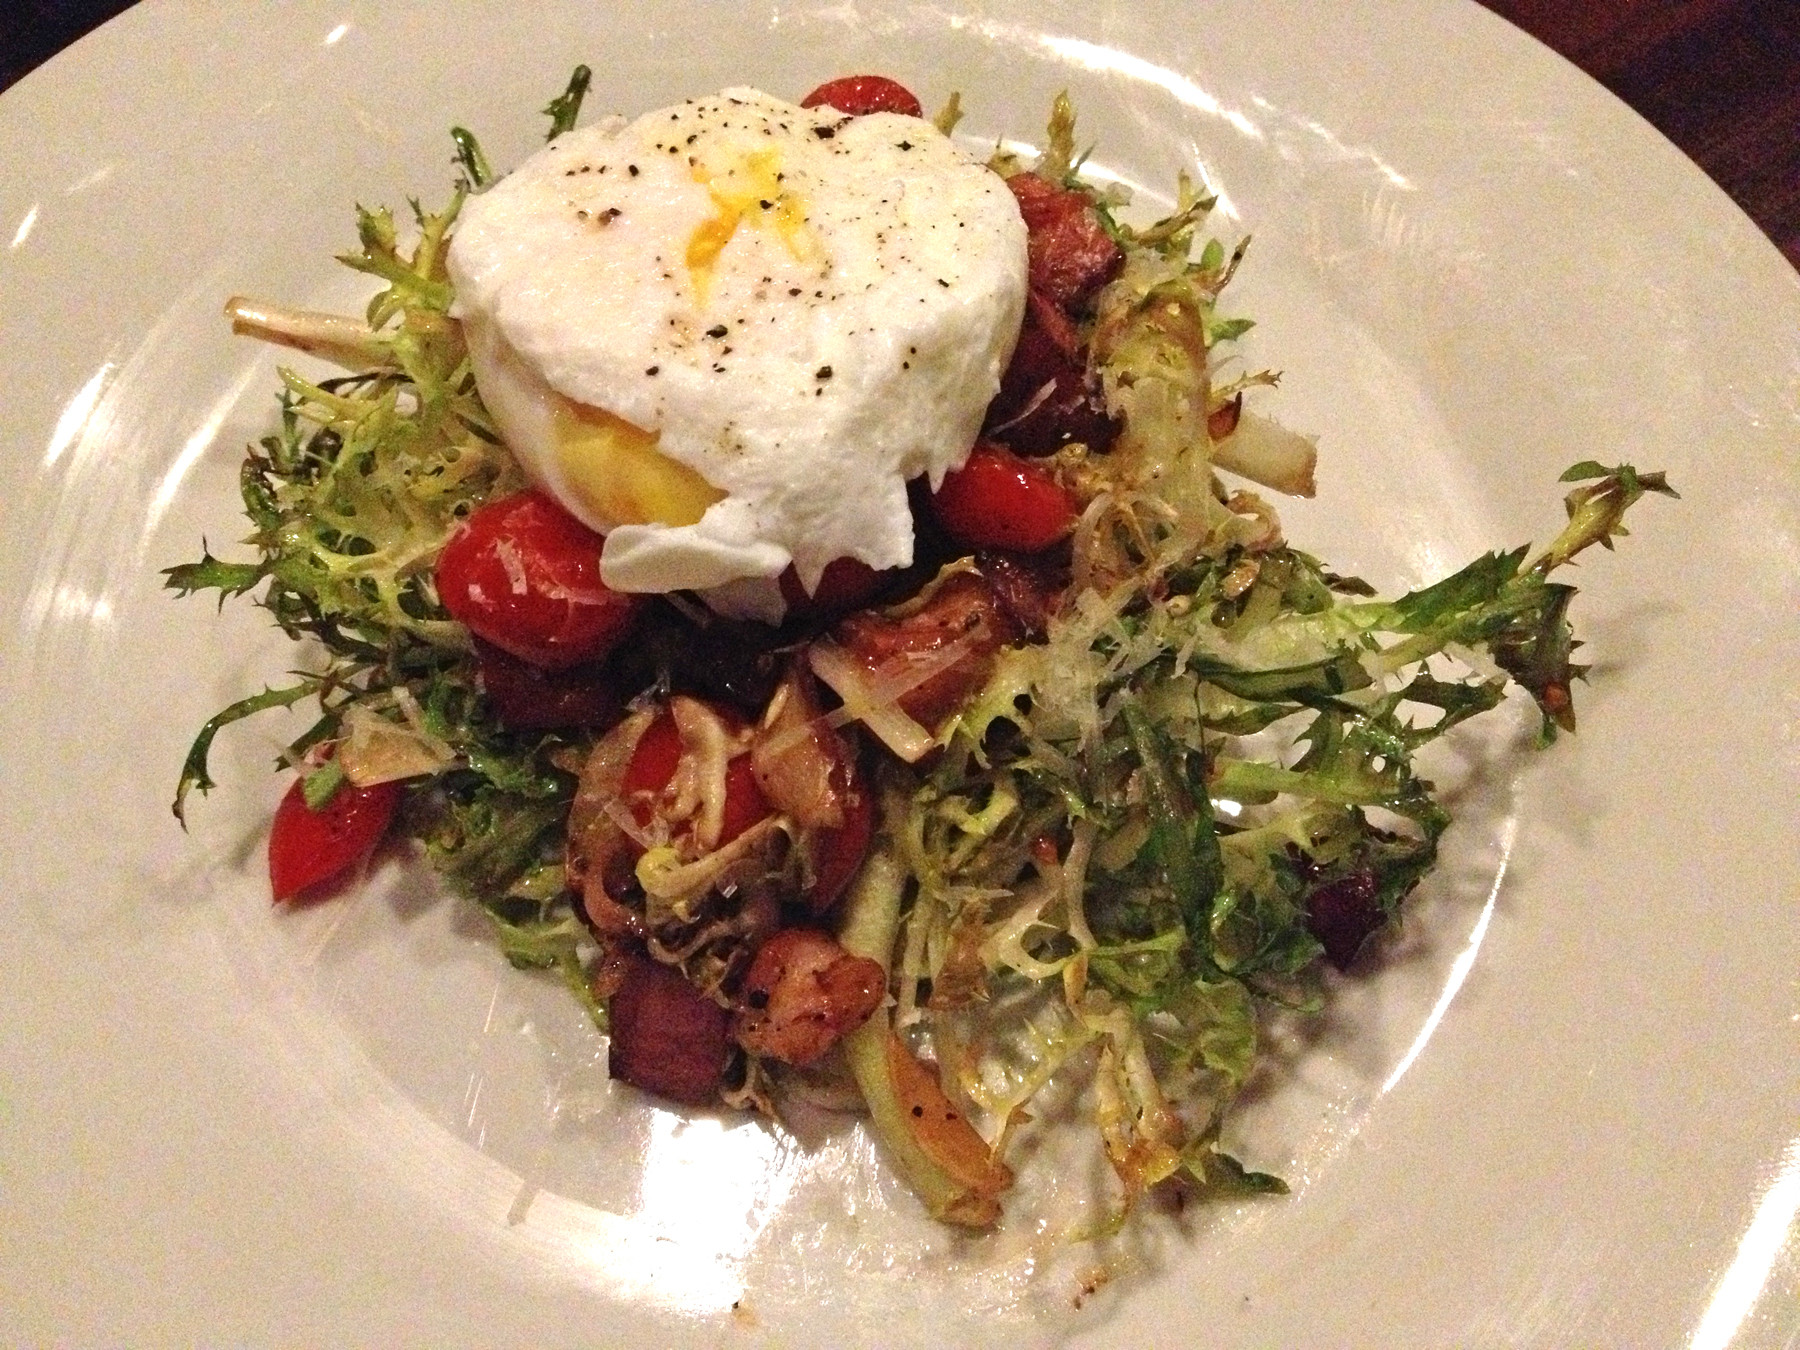 In this salad, the narrow curly pieces of frisée become lightly wilted by the oil in the warm bacon vinaigrette, and it's all topped with a perfectly poached, warm Black Hog Farm egg.